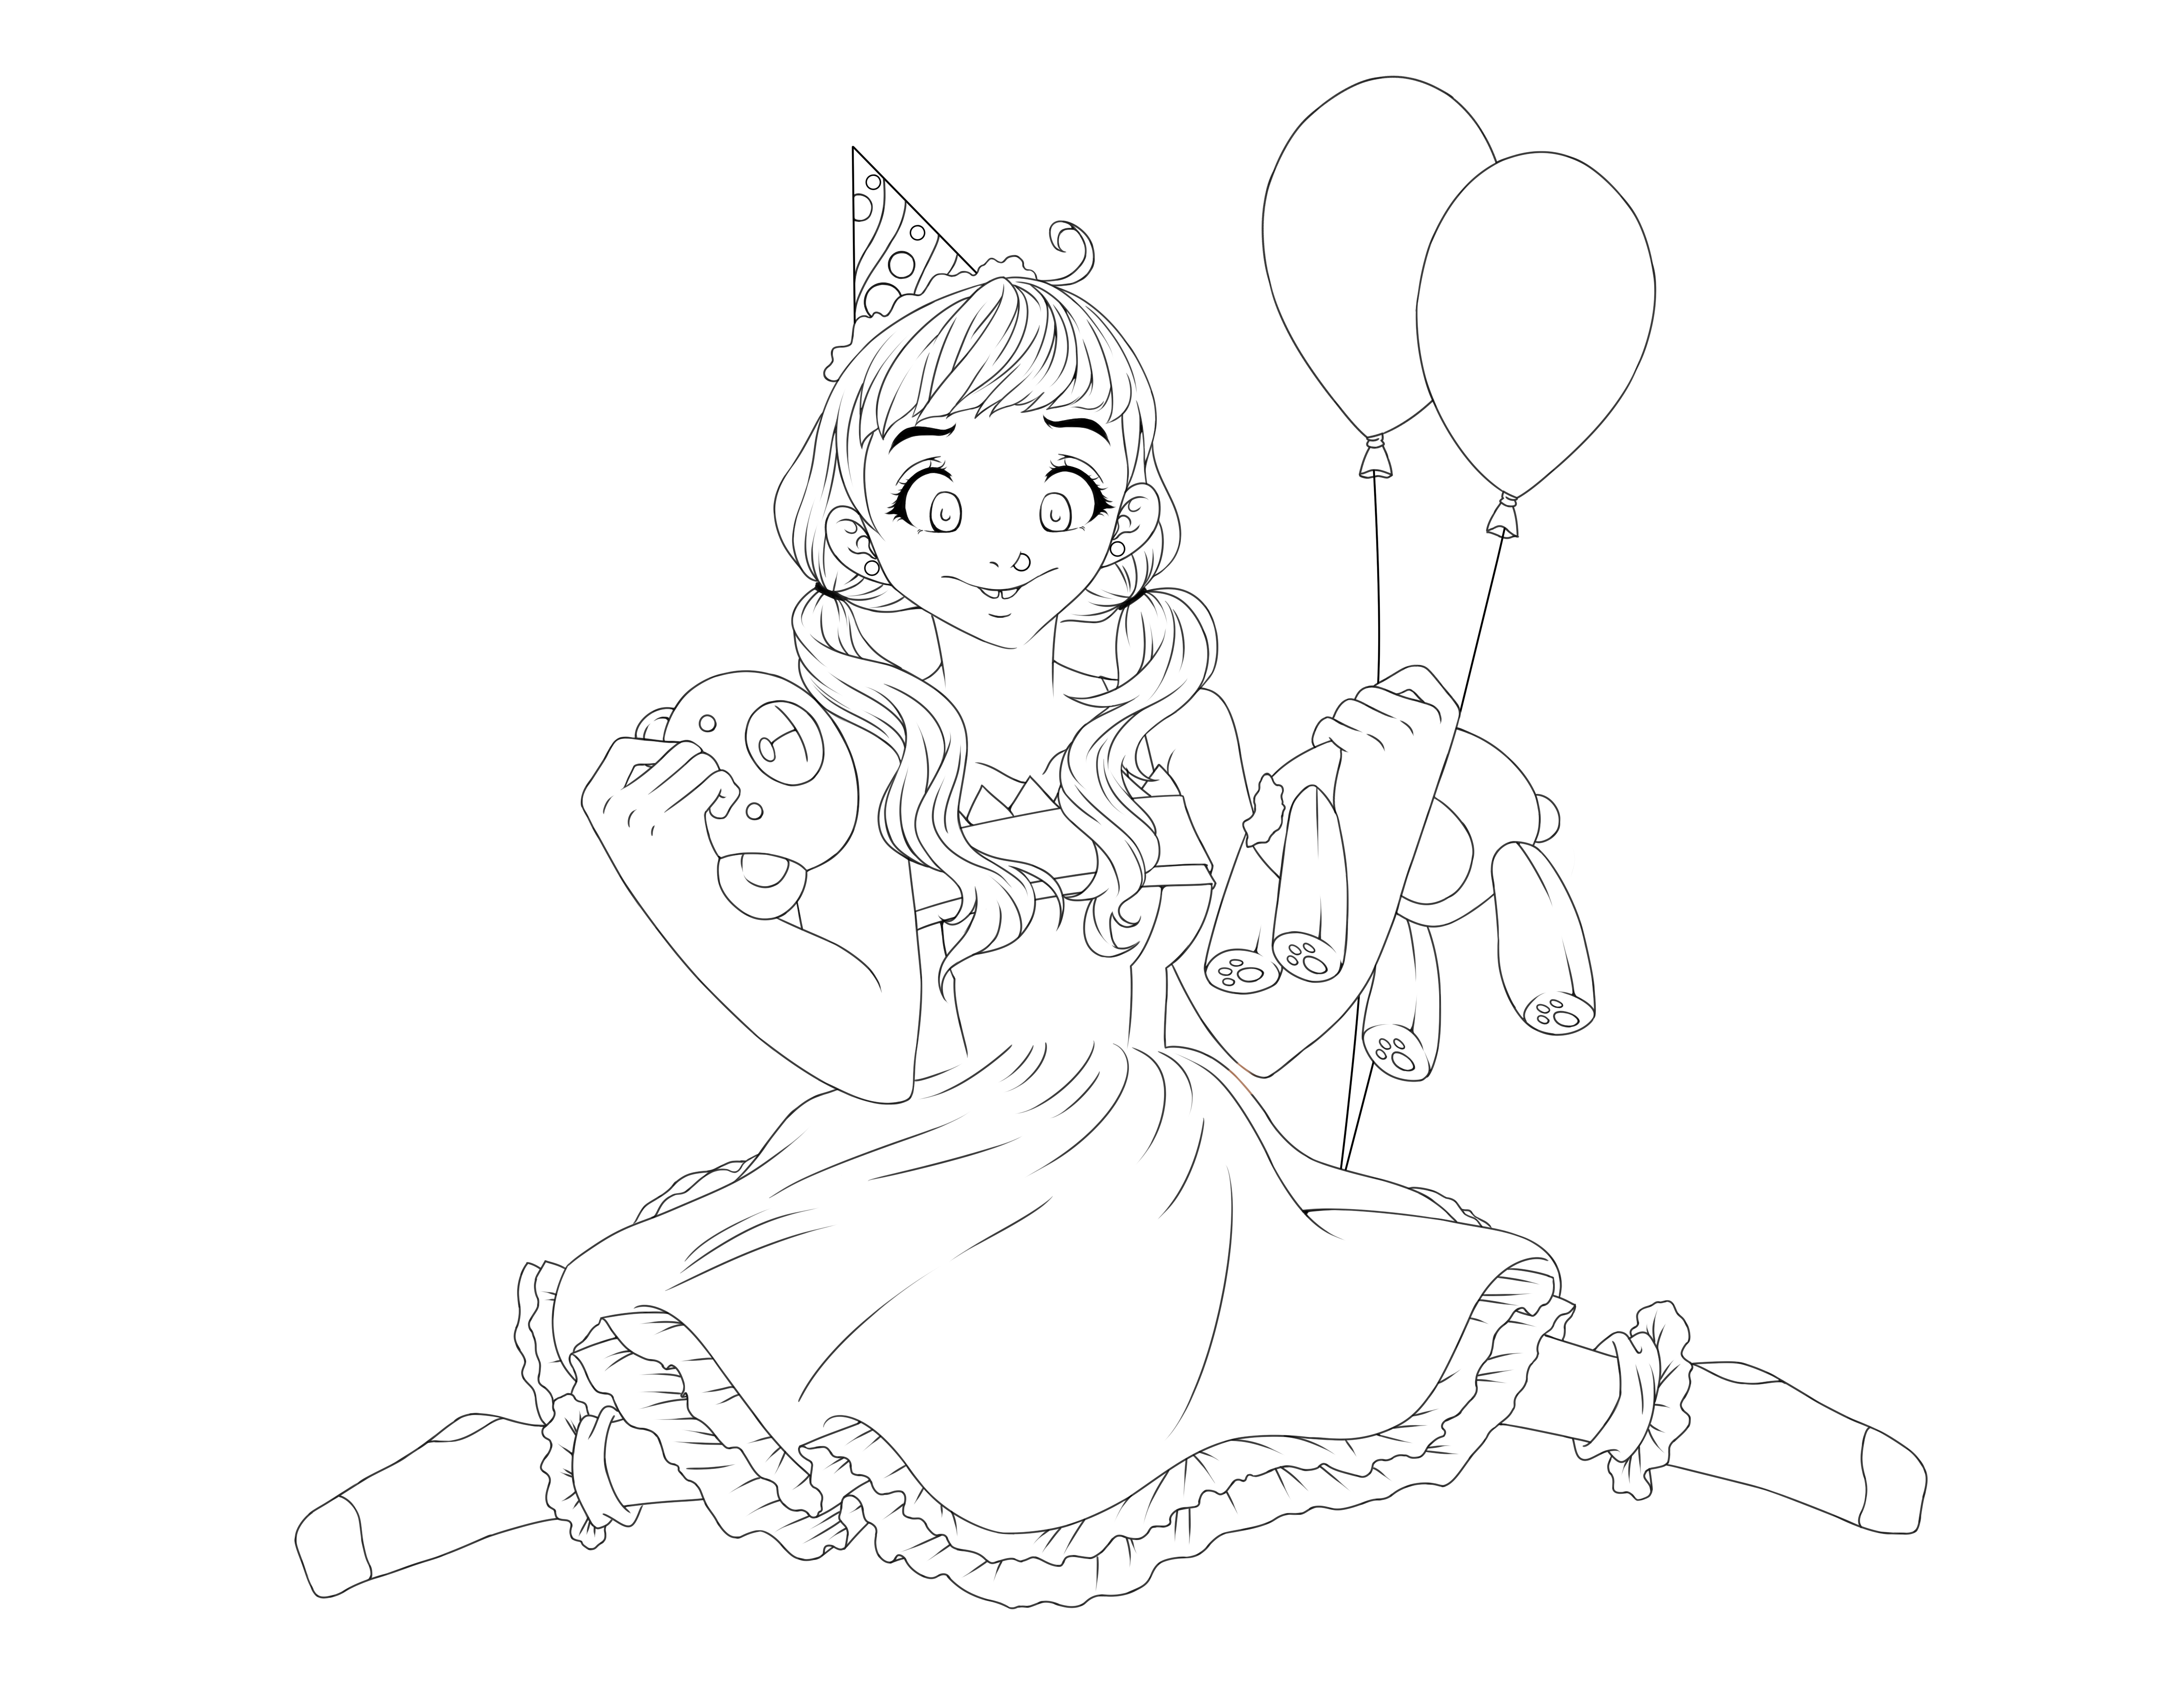 Cry Baby Melanie Martinez Coloring Page Coloring Pages